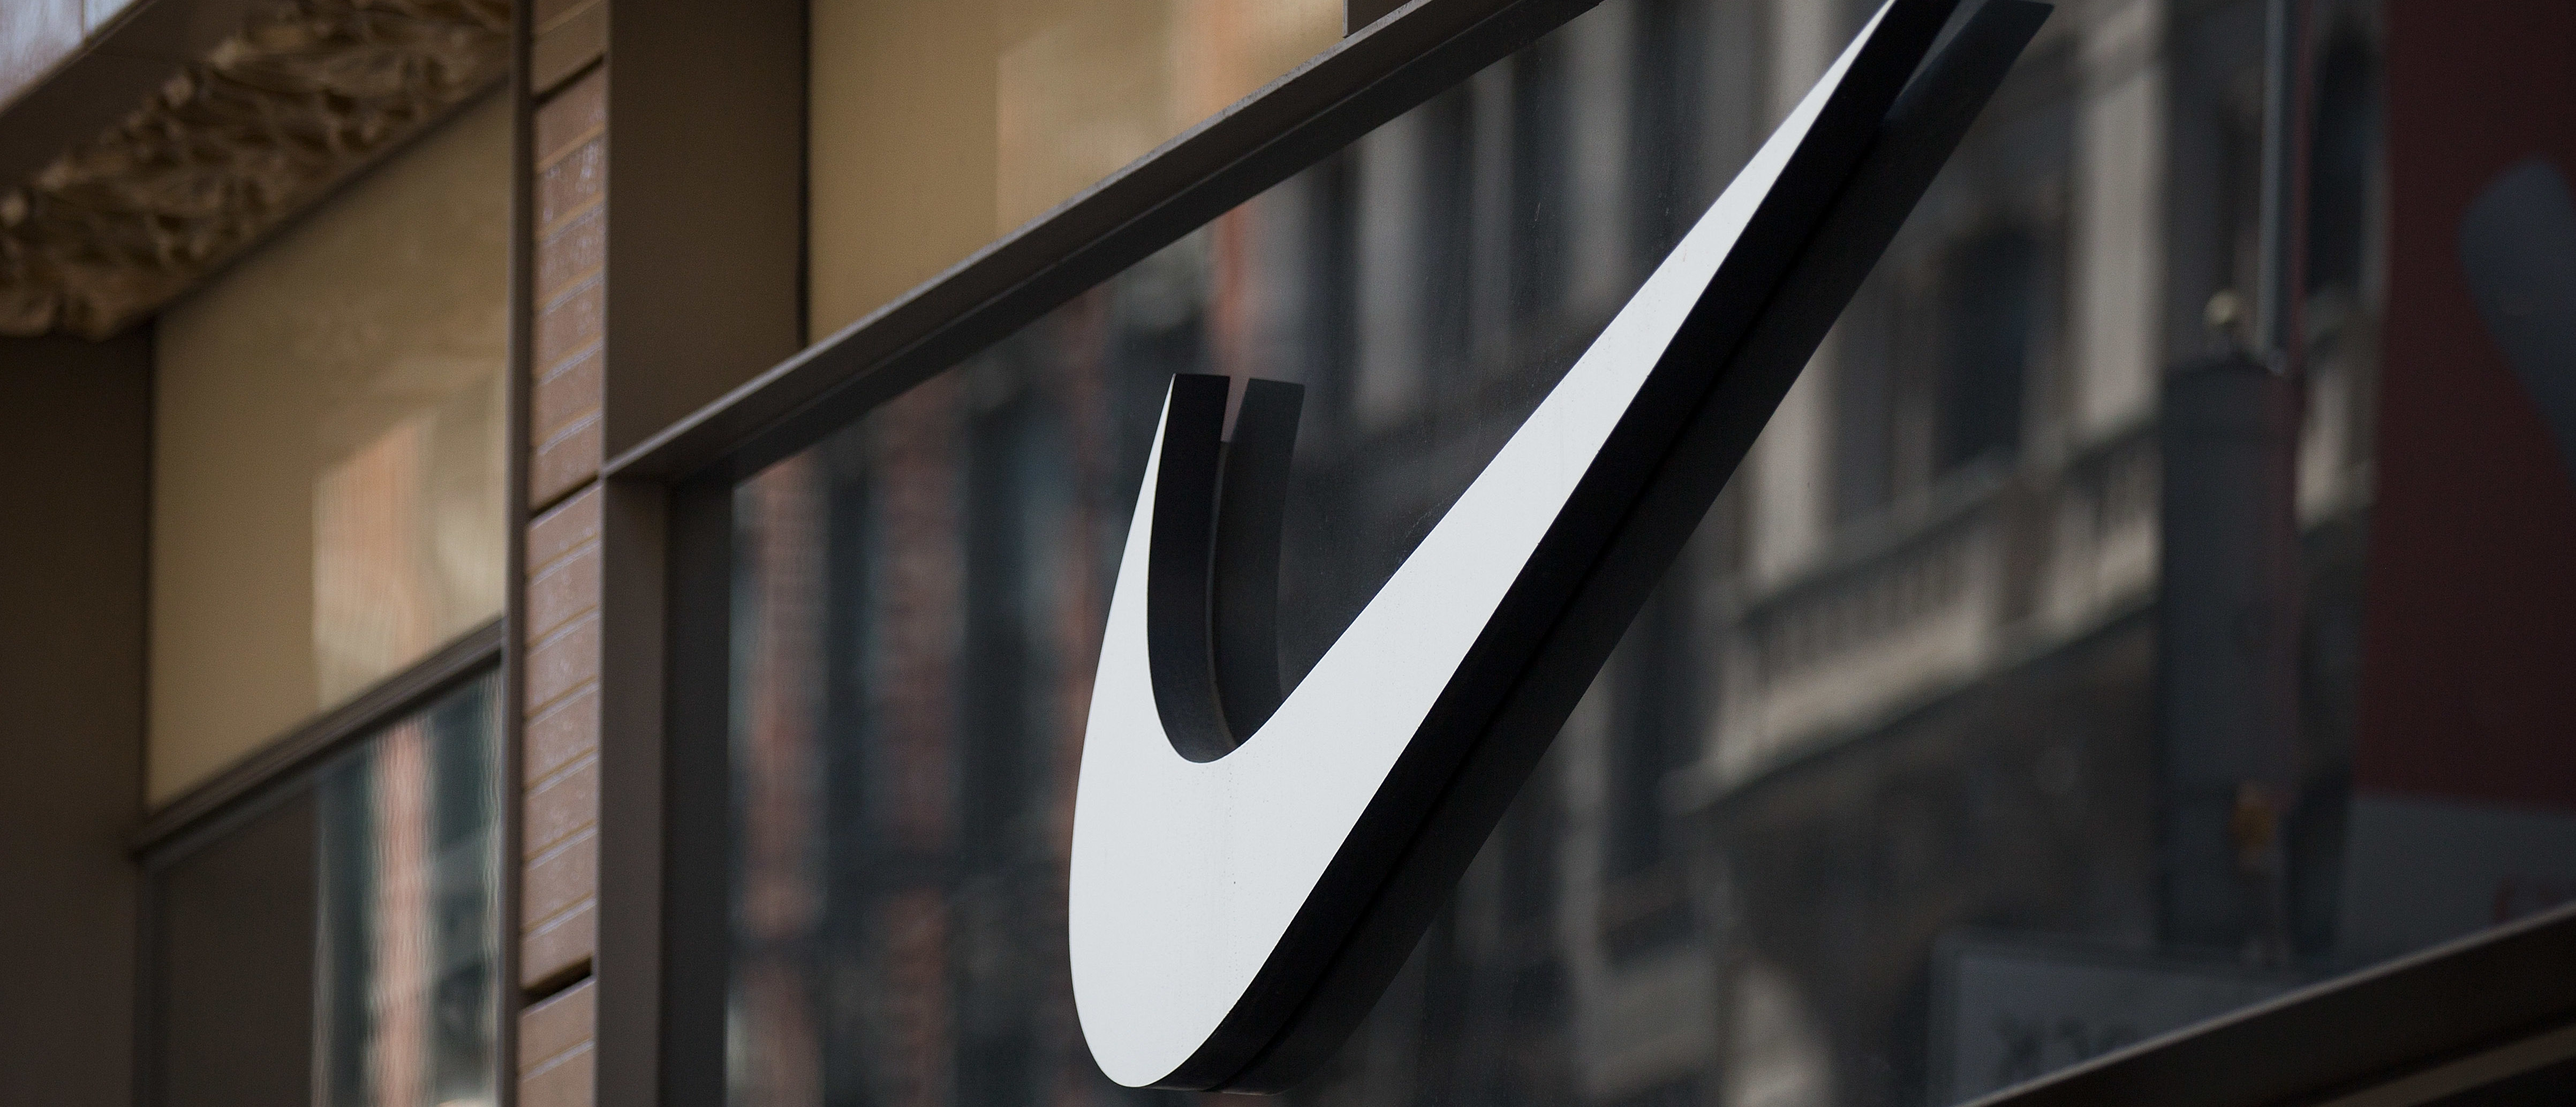 NEW YORK, NY - JUNE 15: The Nike 'swoosh' logo is displayed on the outside of the Nike SoHo store, June 15, 2017 in New York City. Nike announced plans on Thursday to cut about 2 percent of its global workforce. (Photo by Drew Angerer/Getty Images)